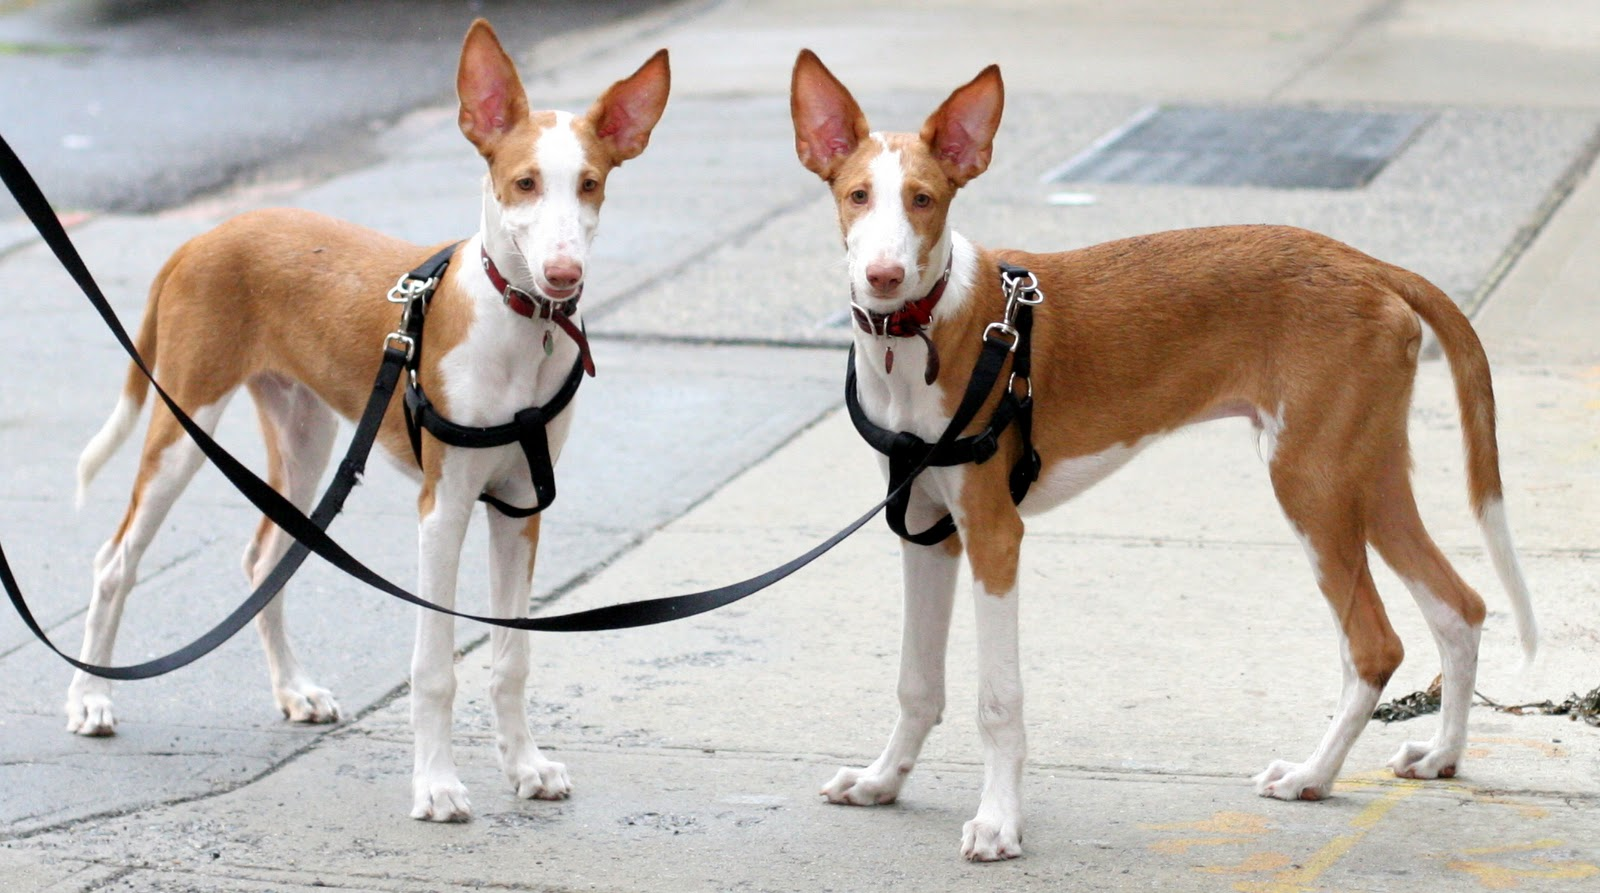 Two Ibizan Hound dogs wallpaper